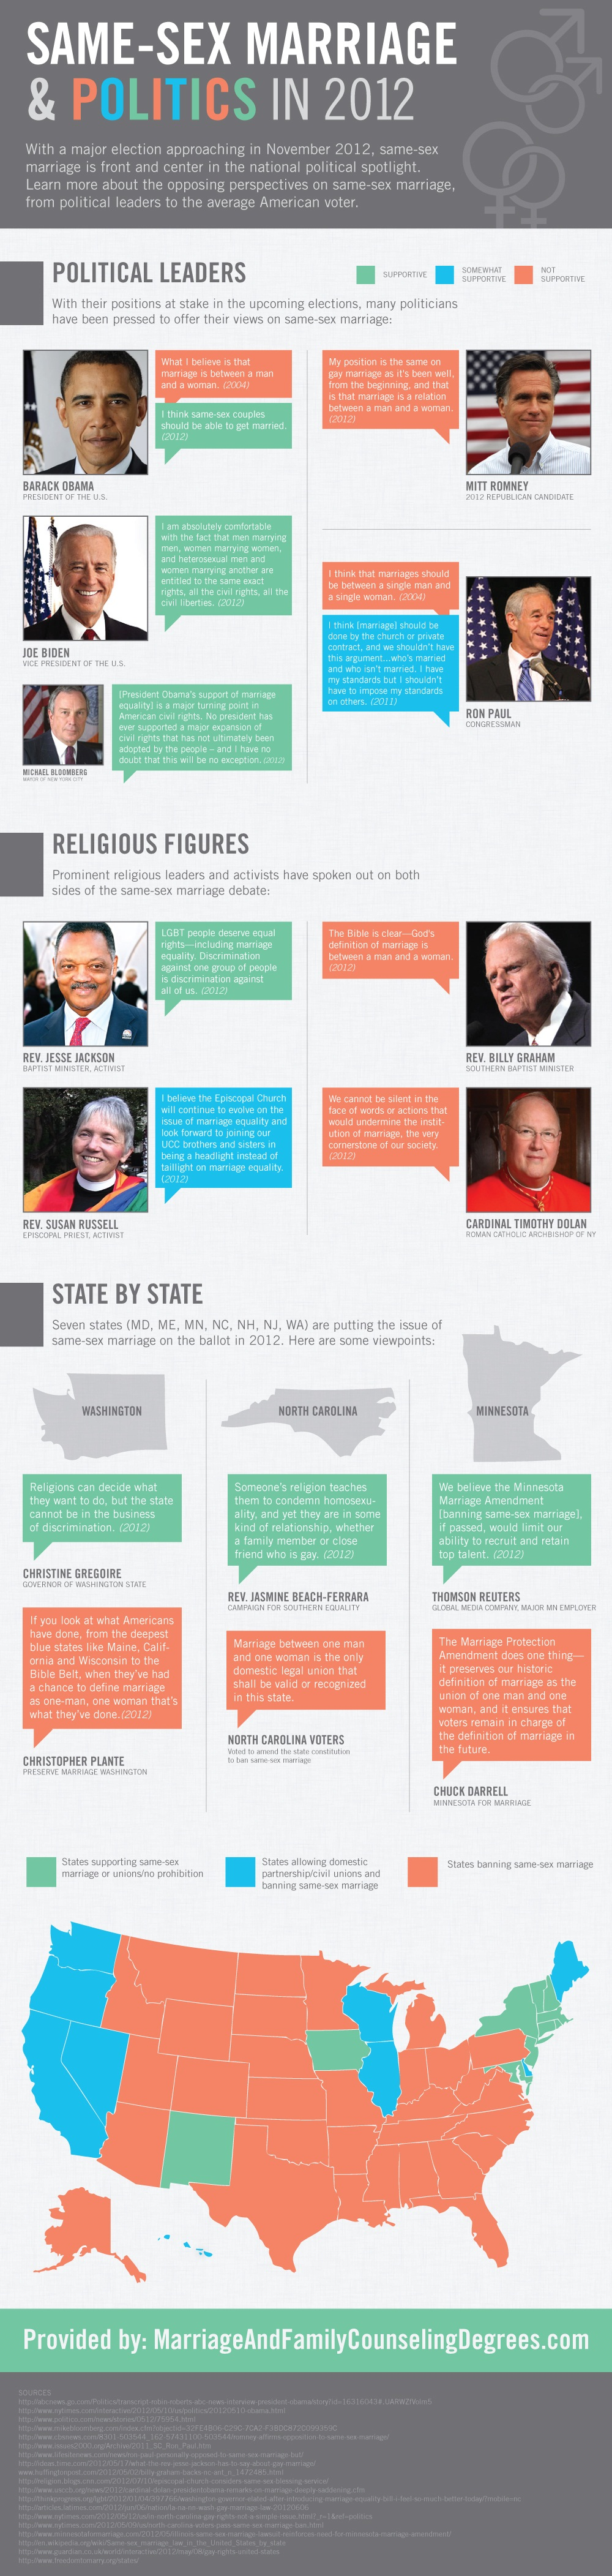 samesex-marriage-and-politics-in-2012_504618b31c0f7